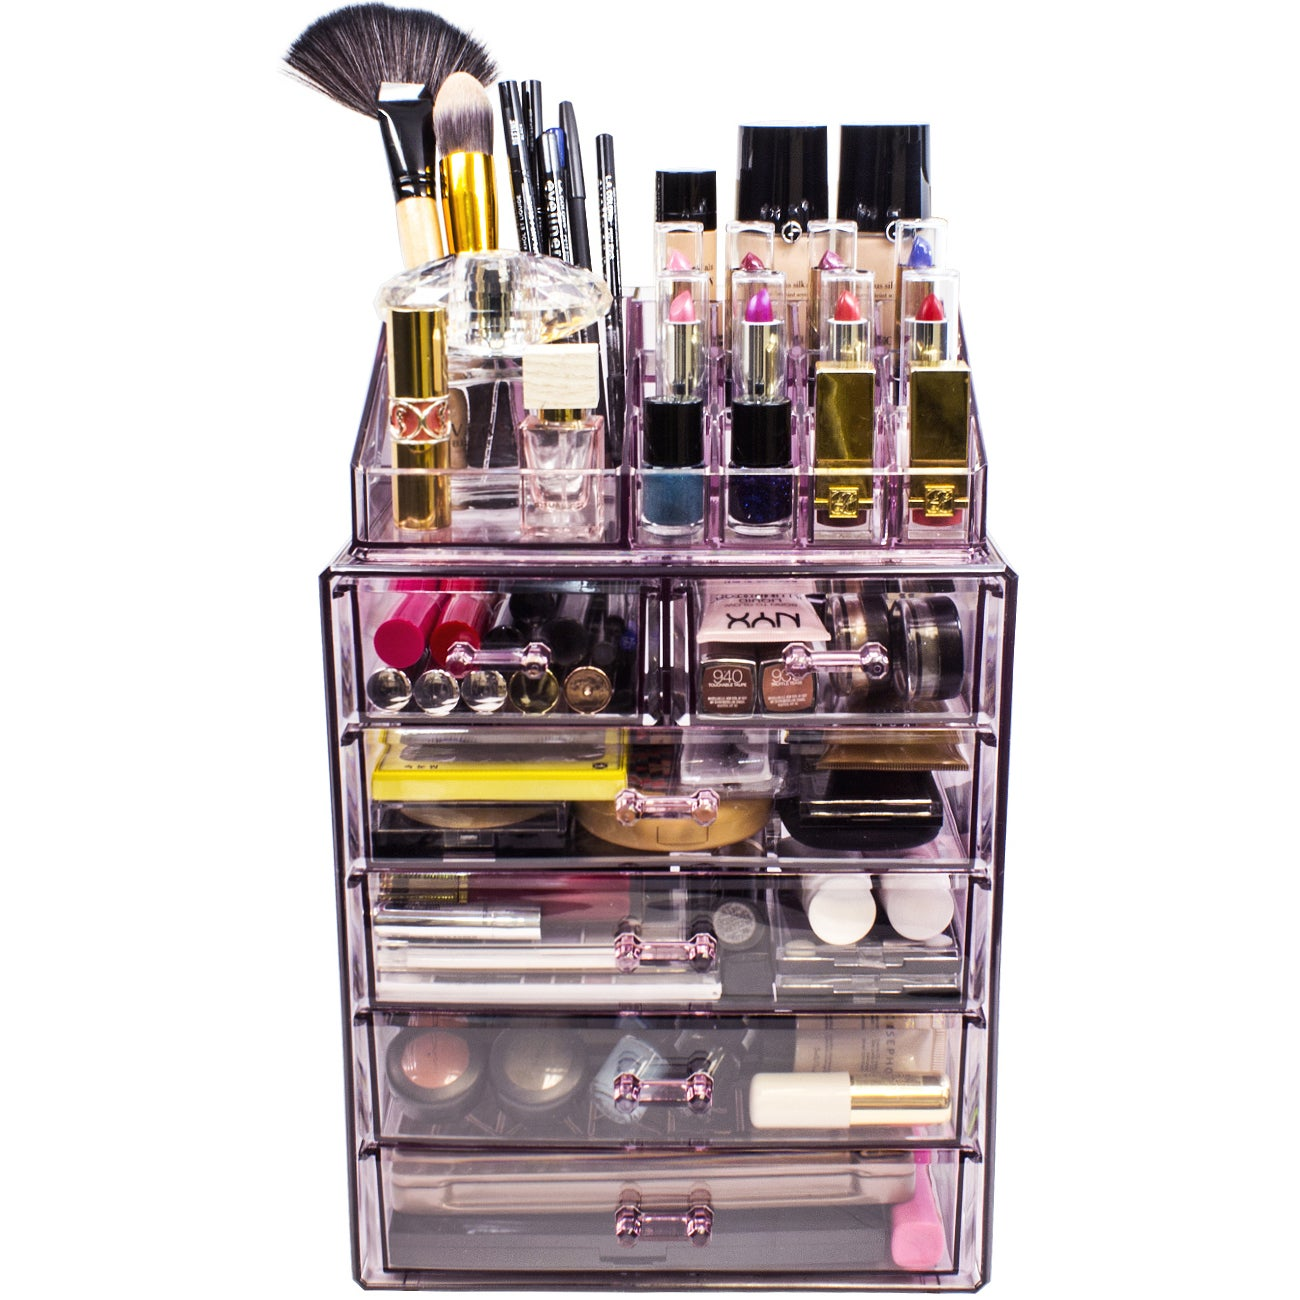 Opi Nail Tech Storage Case - NailArts Ideas